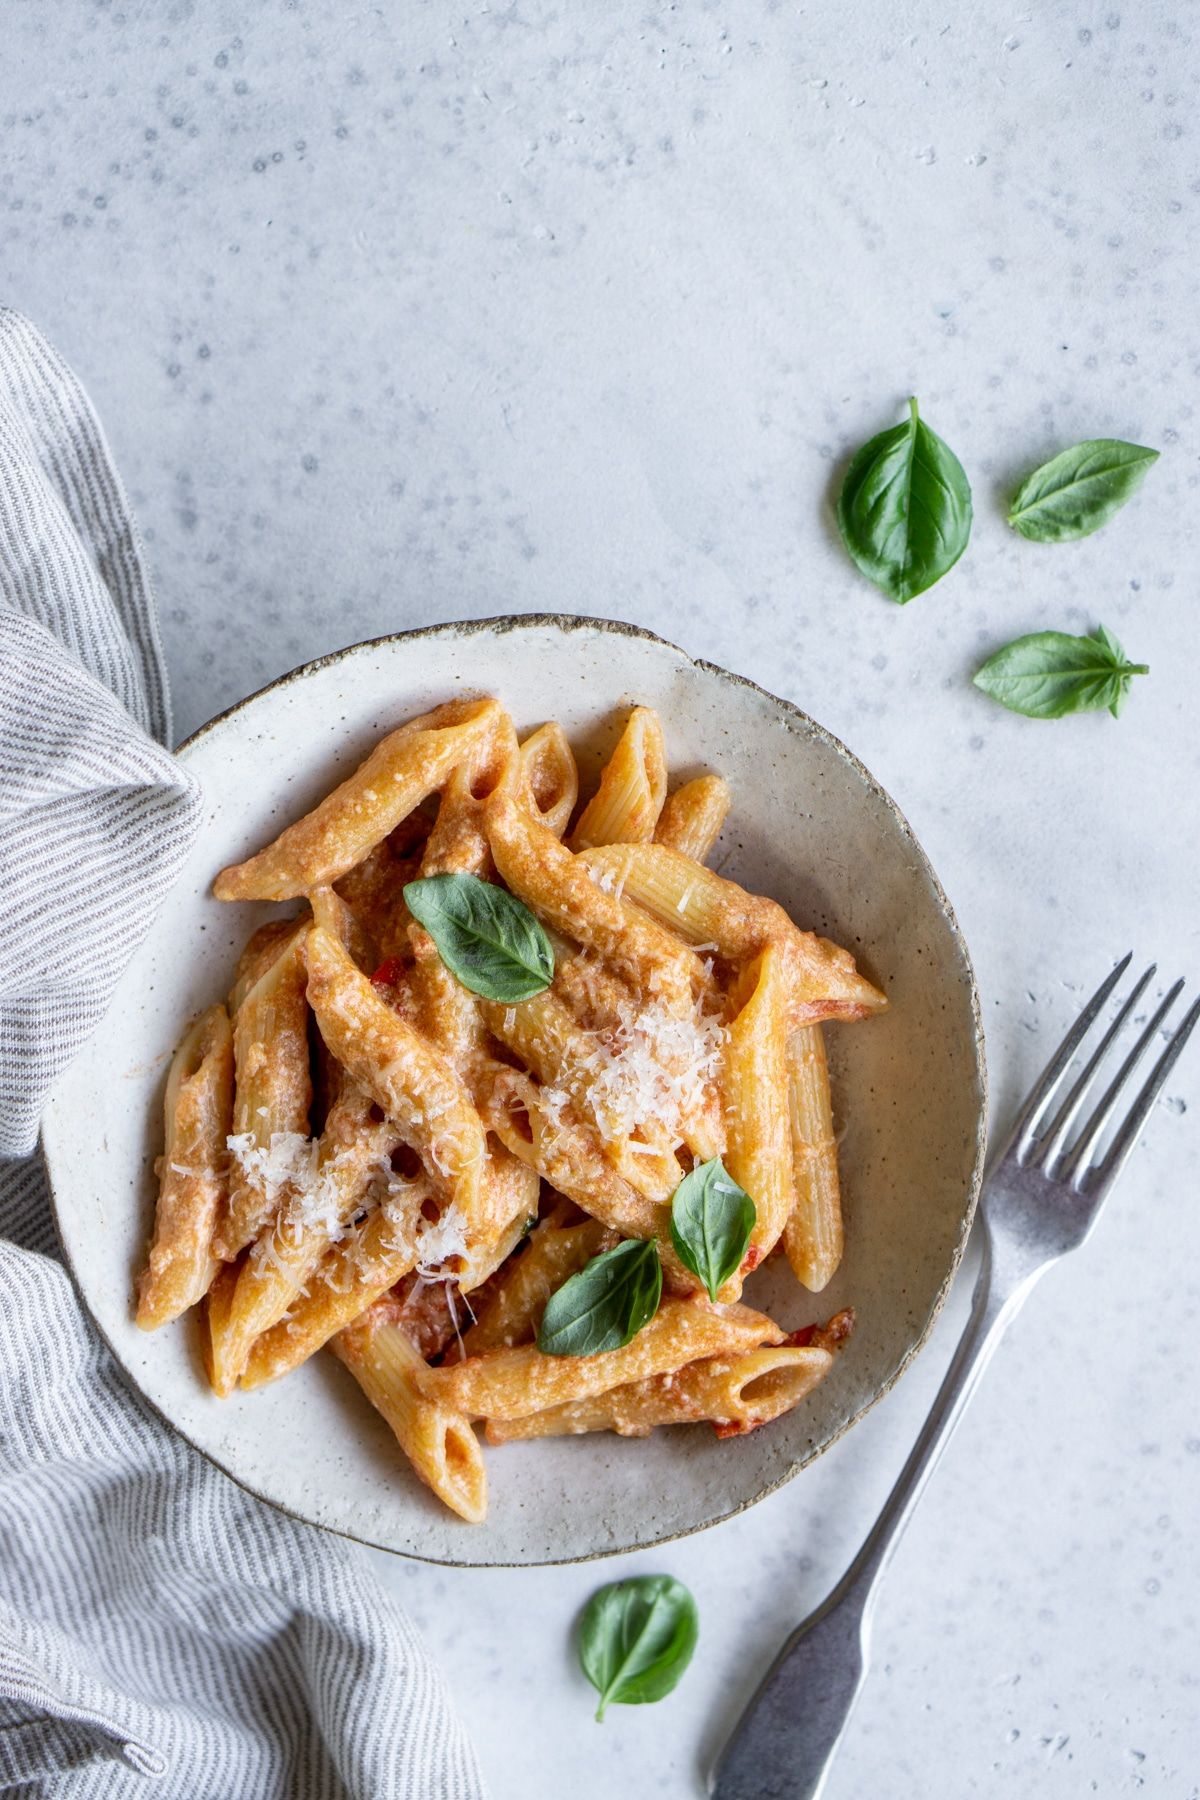 Bowl of tomato ricotta pasta with a napkin to the side